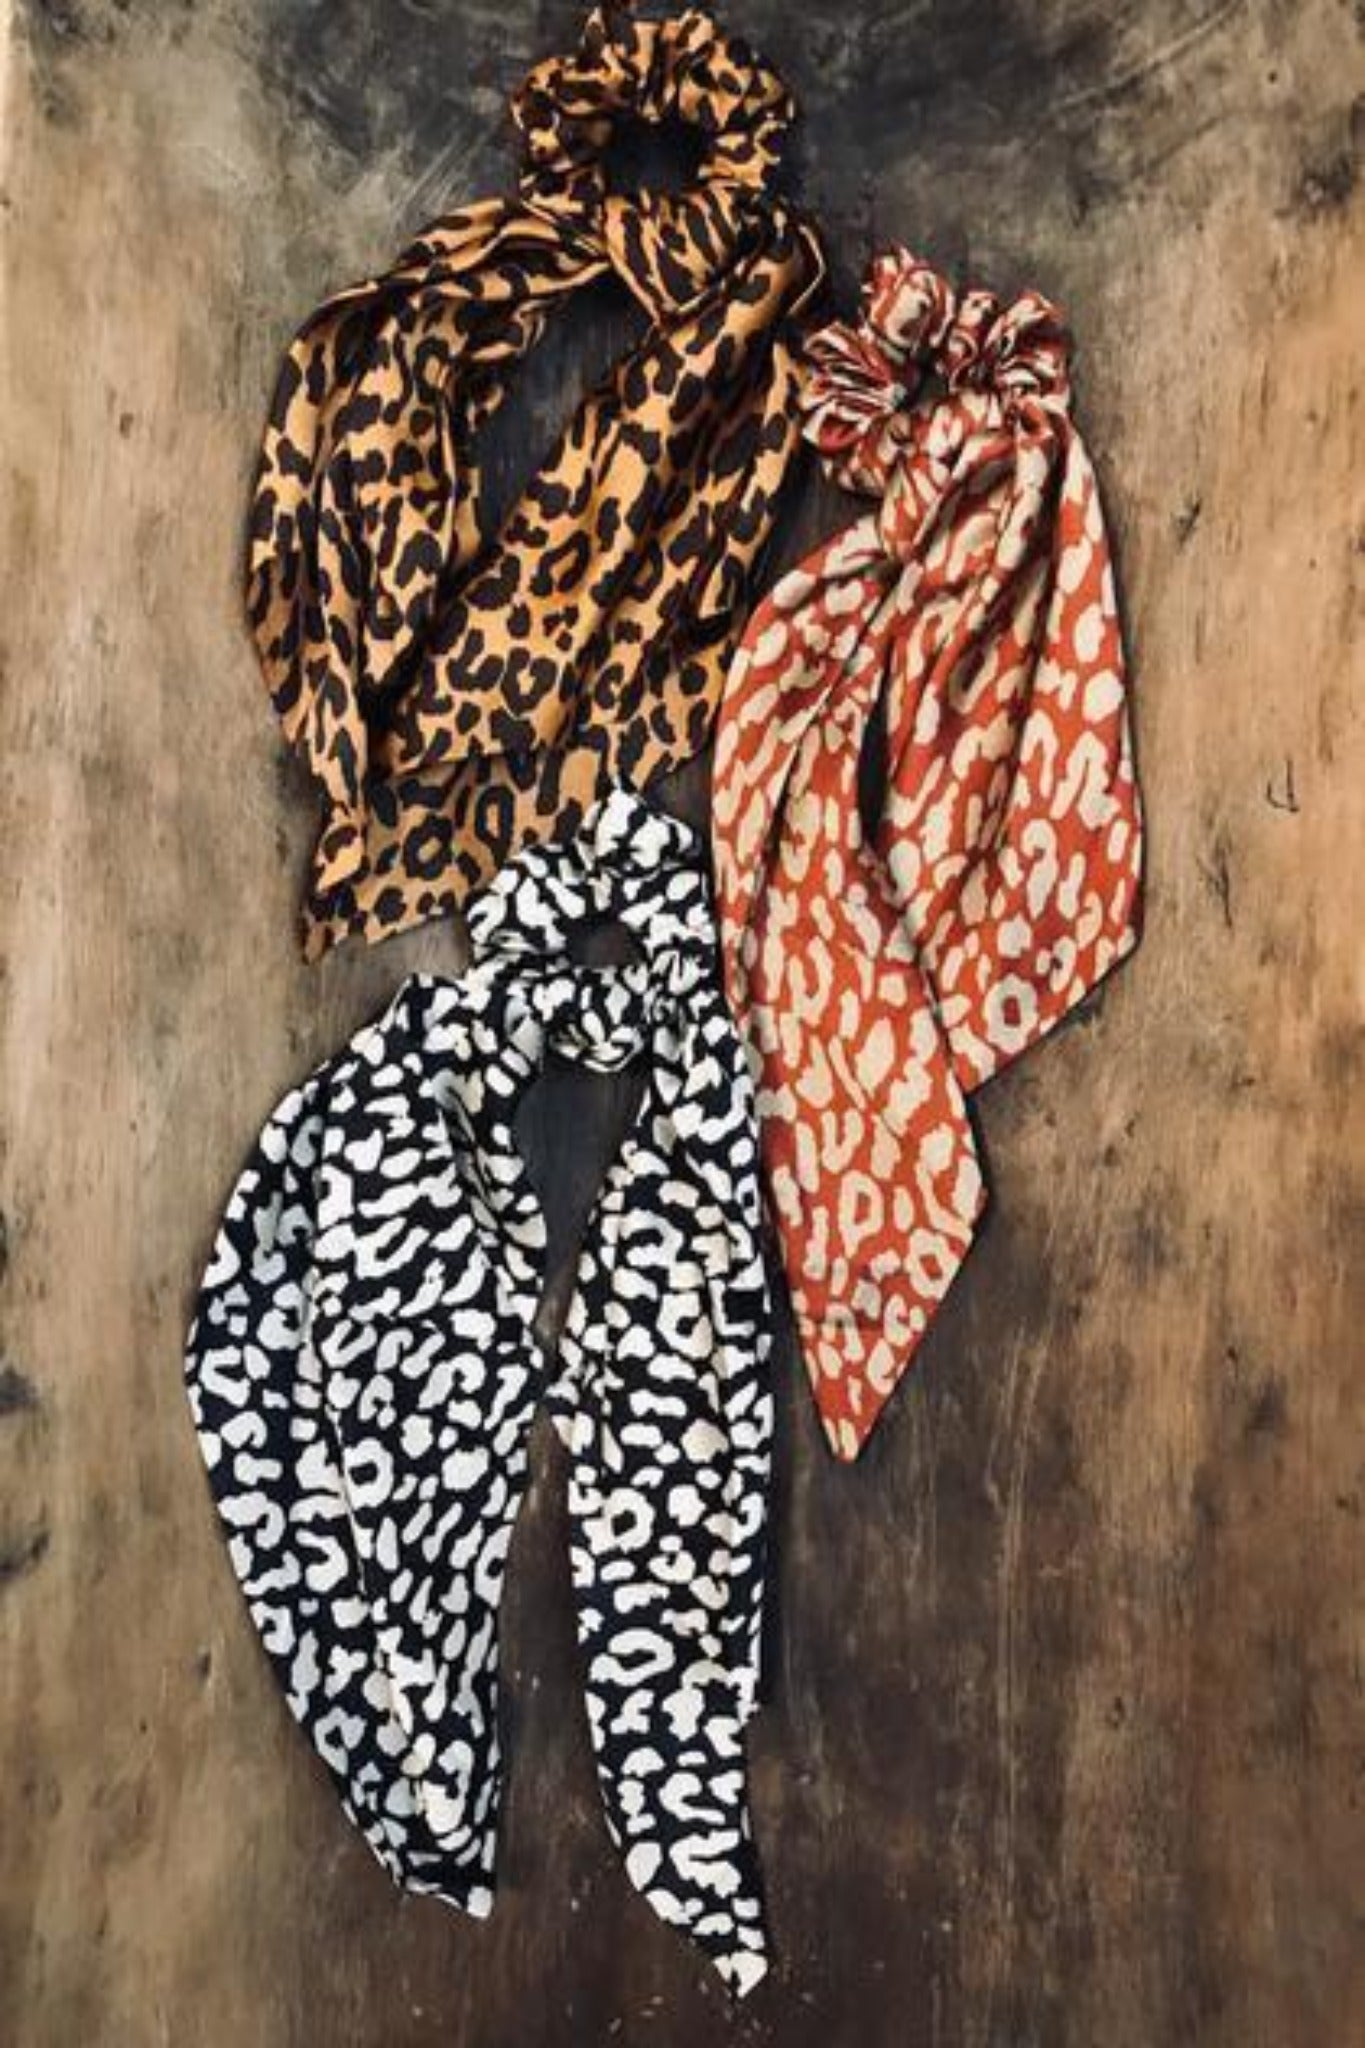 Leopard / Animal Print Hair Ties | Trendy Style at Willye Leigh